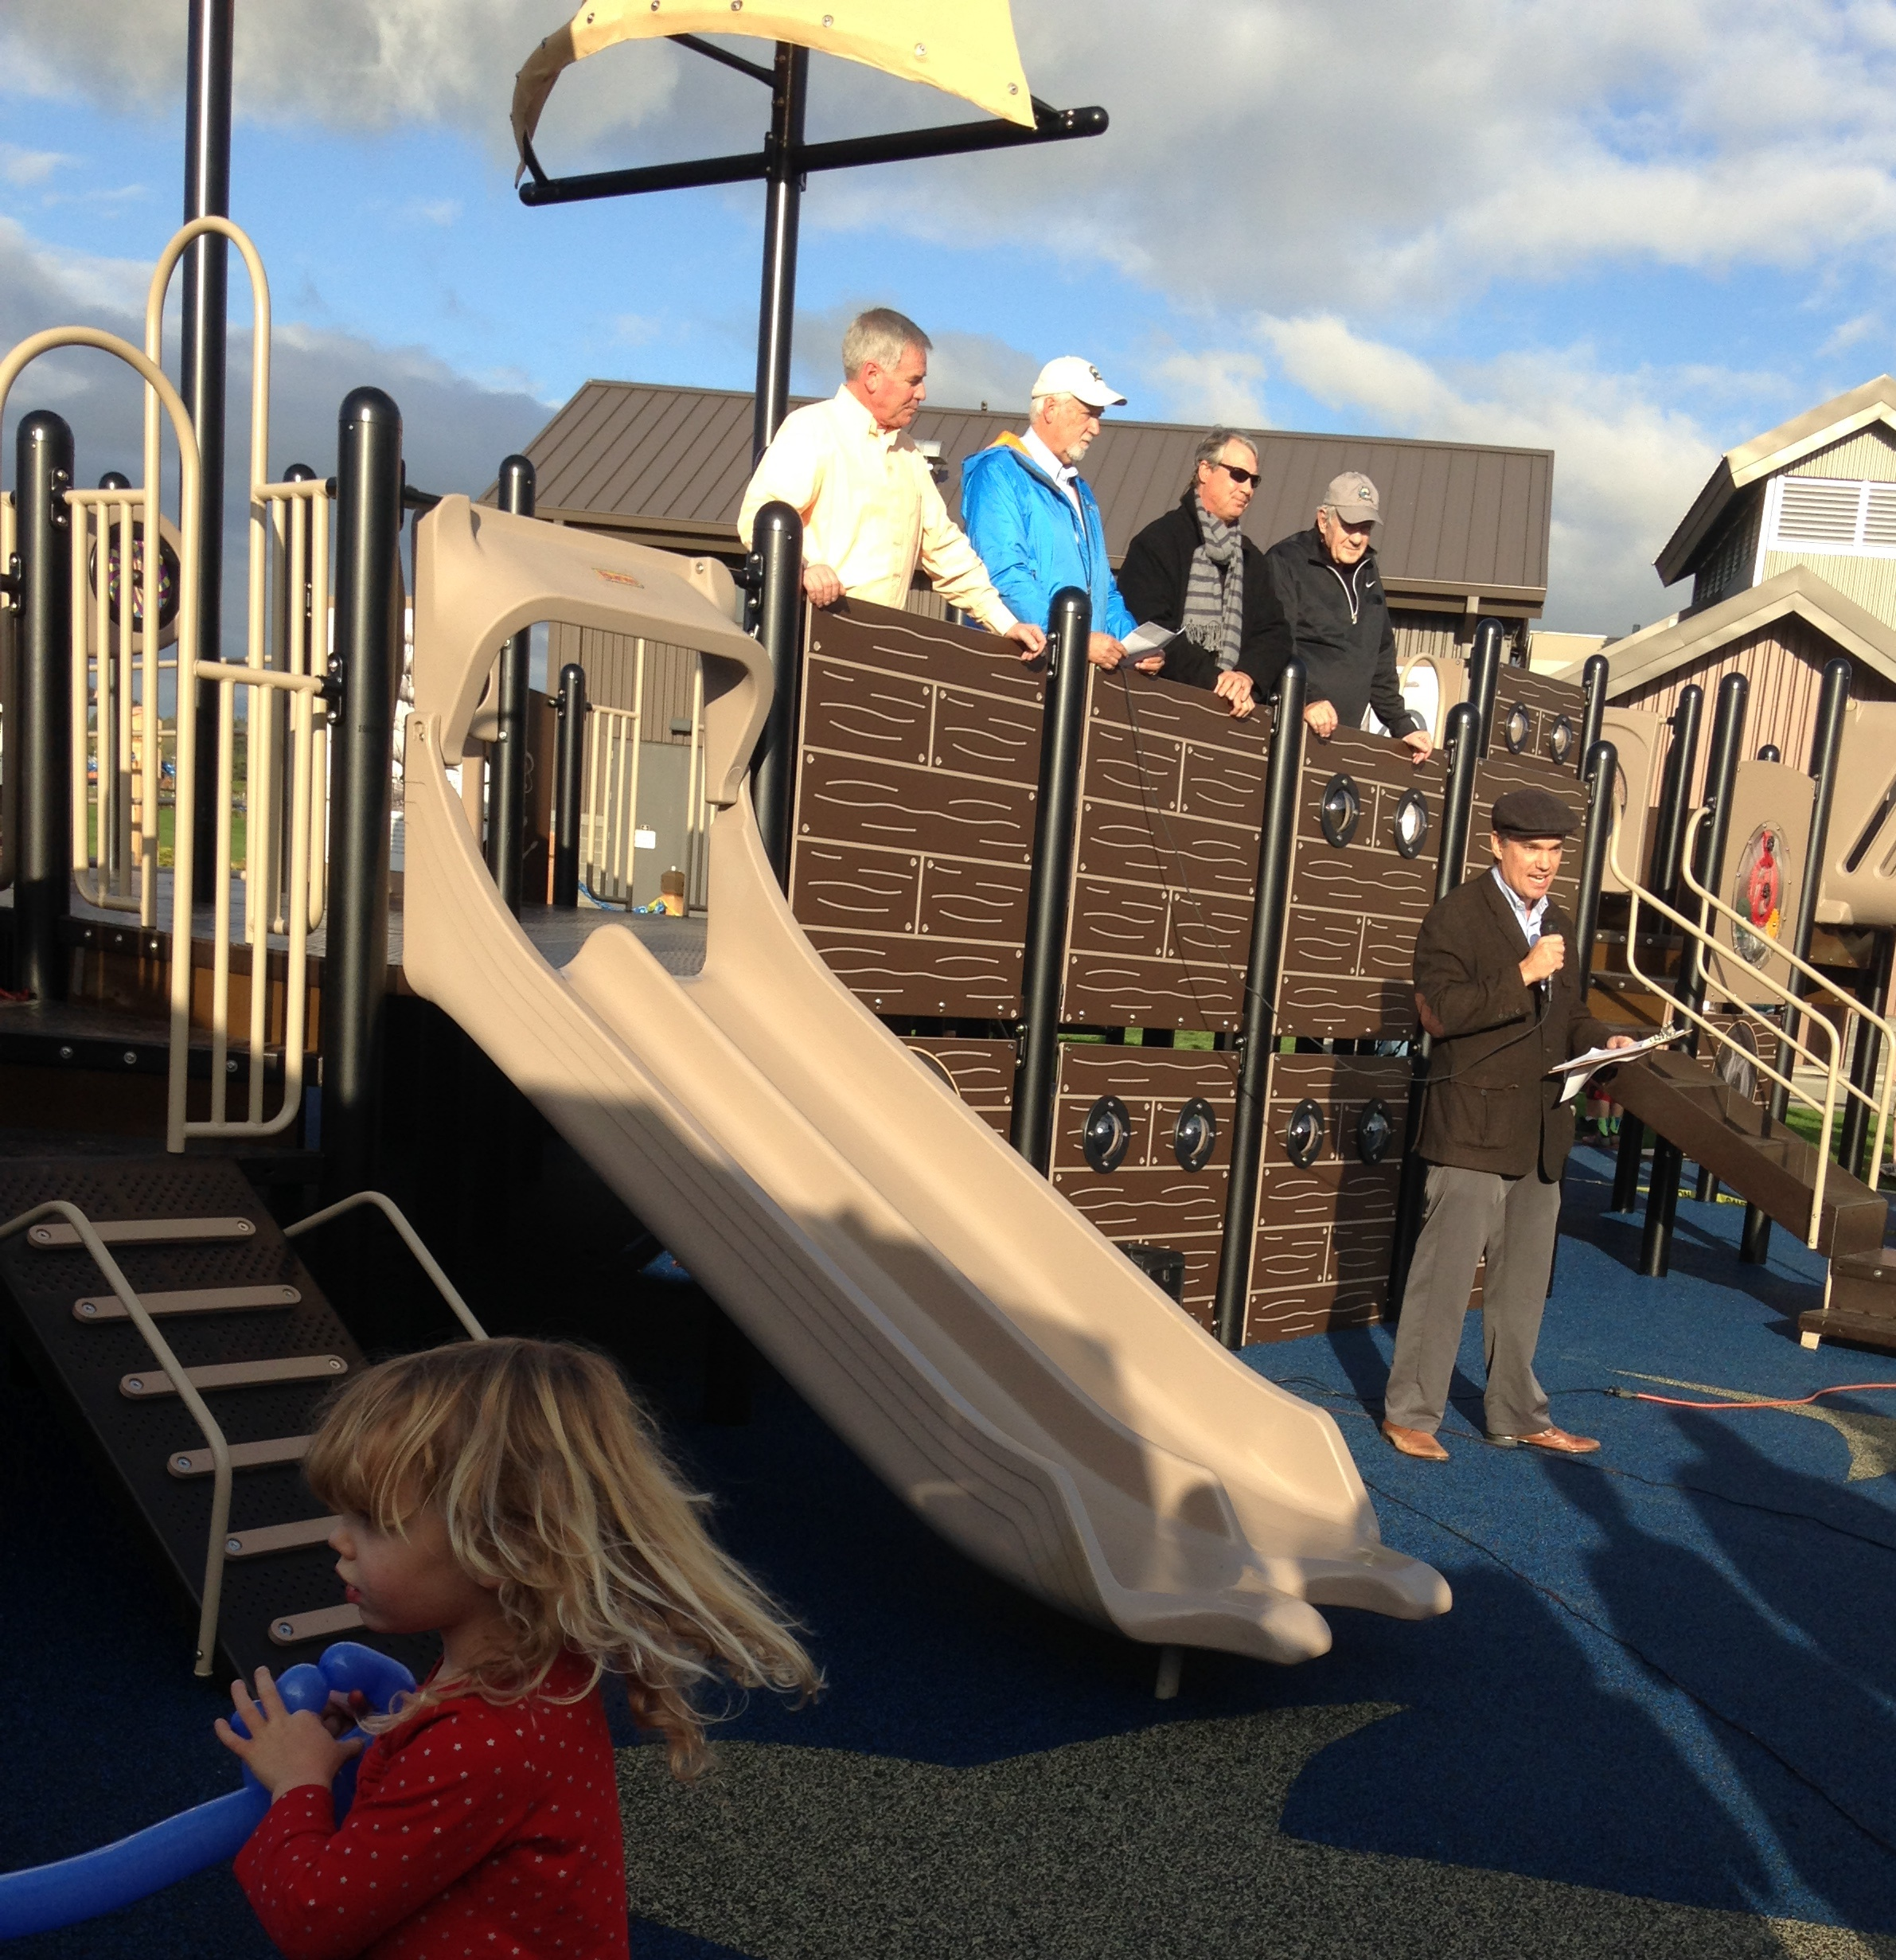 Alex Wenger, AICP talks at the grand opening of the Marine Park Playground. Standing on the Pirate Ship behind him, are from left to right: Ted Morris, Park District Executive Director; Dave Wilbrecht, City Manager (City of Blaine); Jeff Carrington, Park District Commissioner; and Harry Robinson, City of Blaine Mayor. Running in the corner is Alex's daughter Claire.